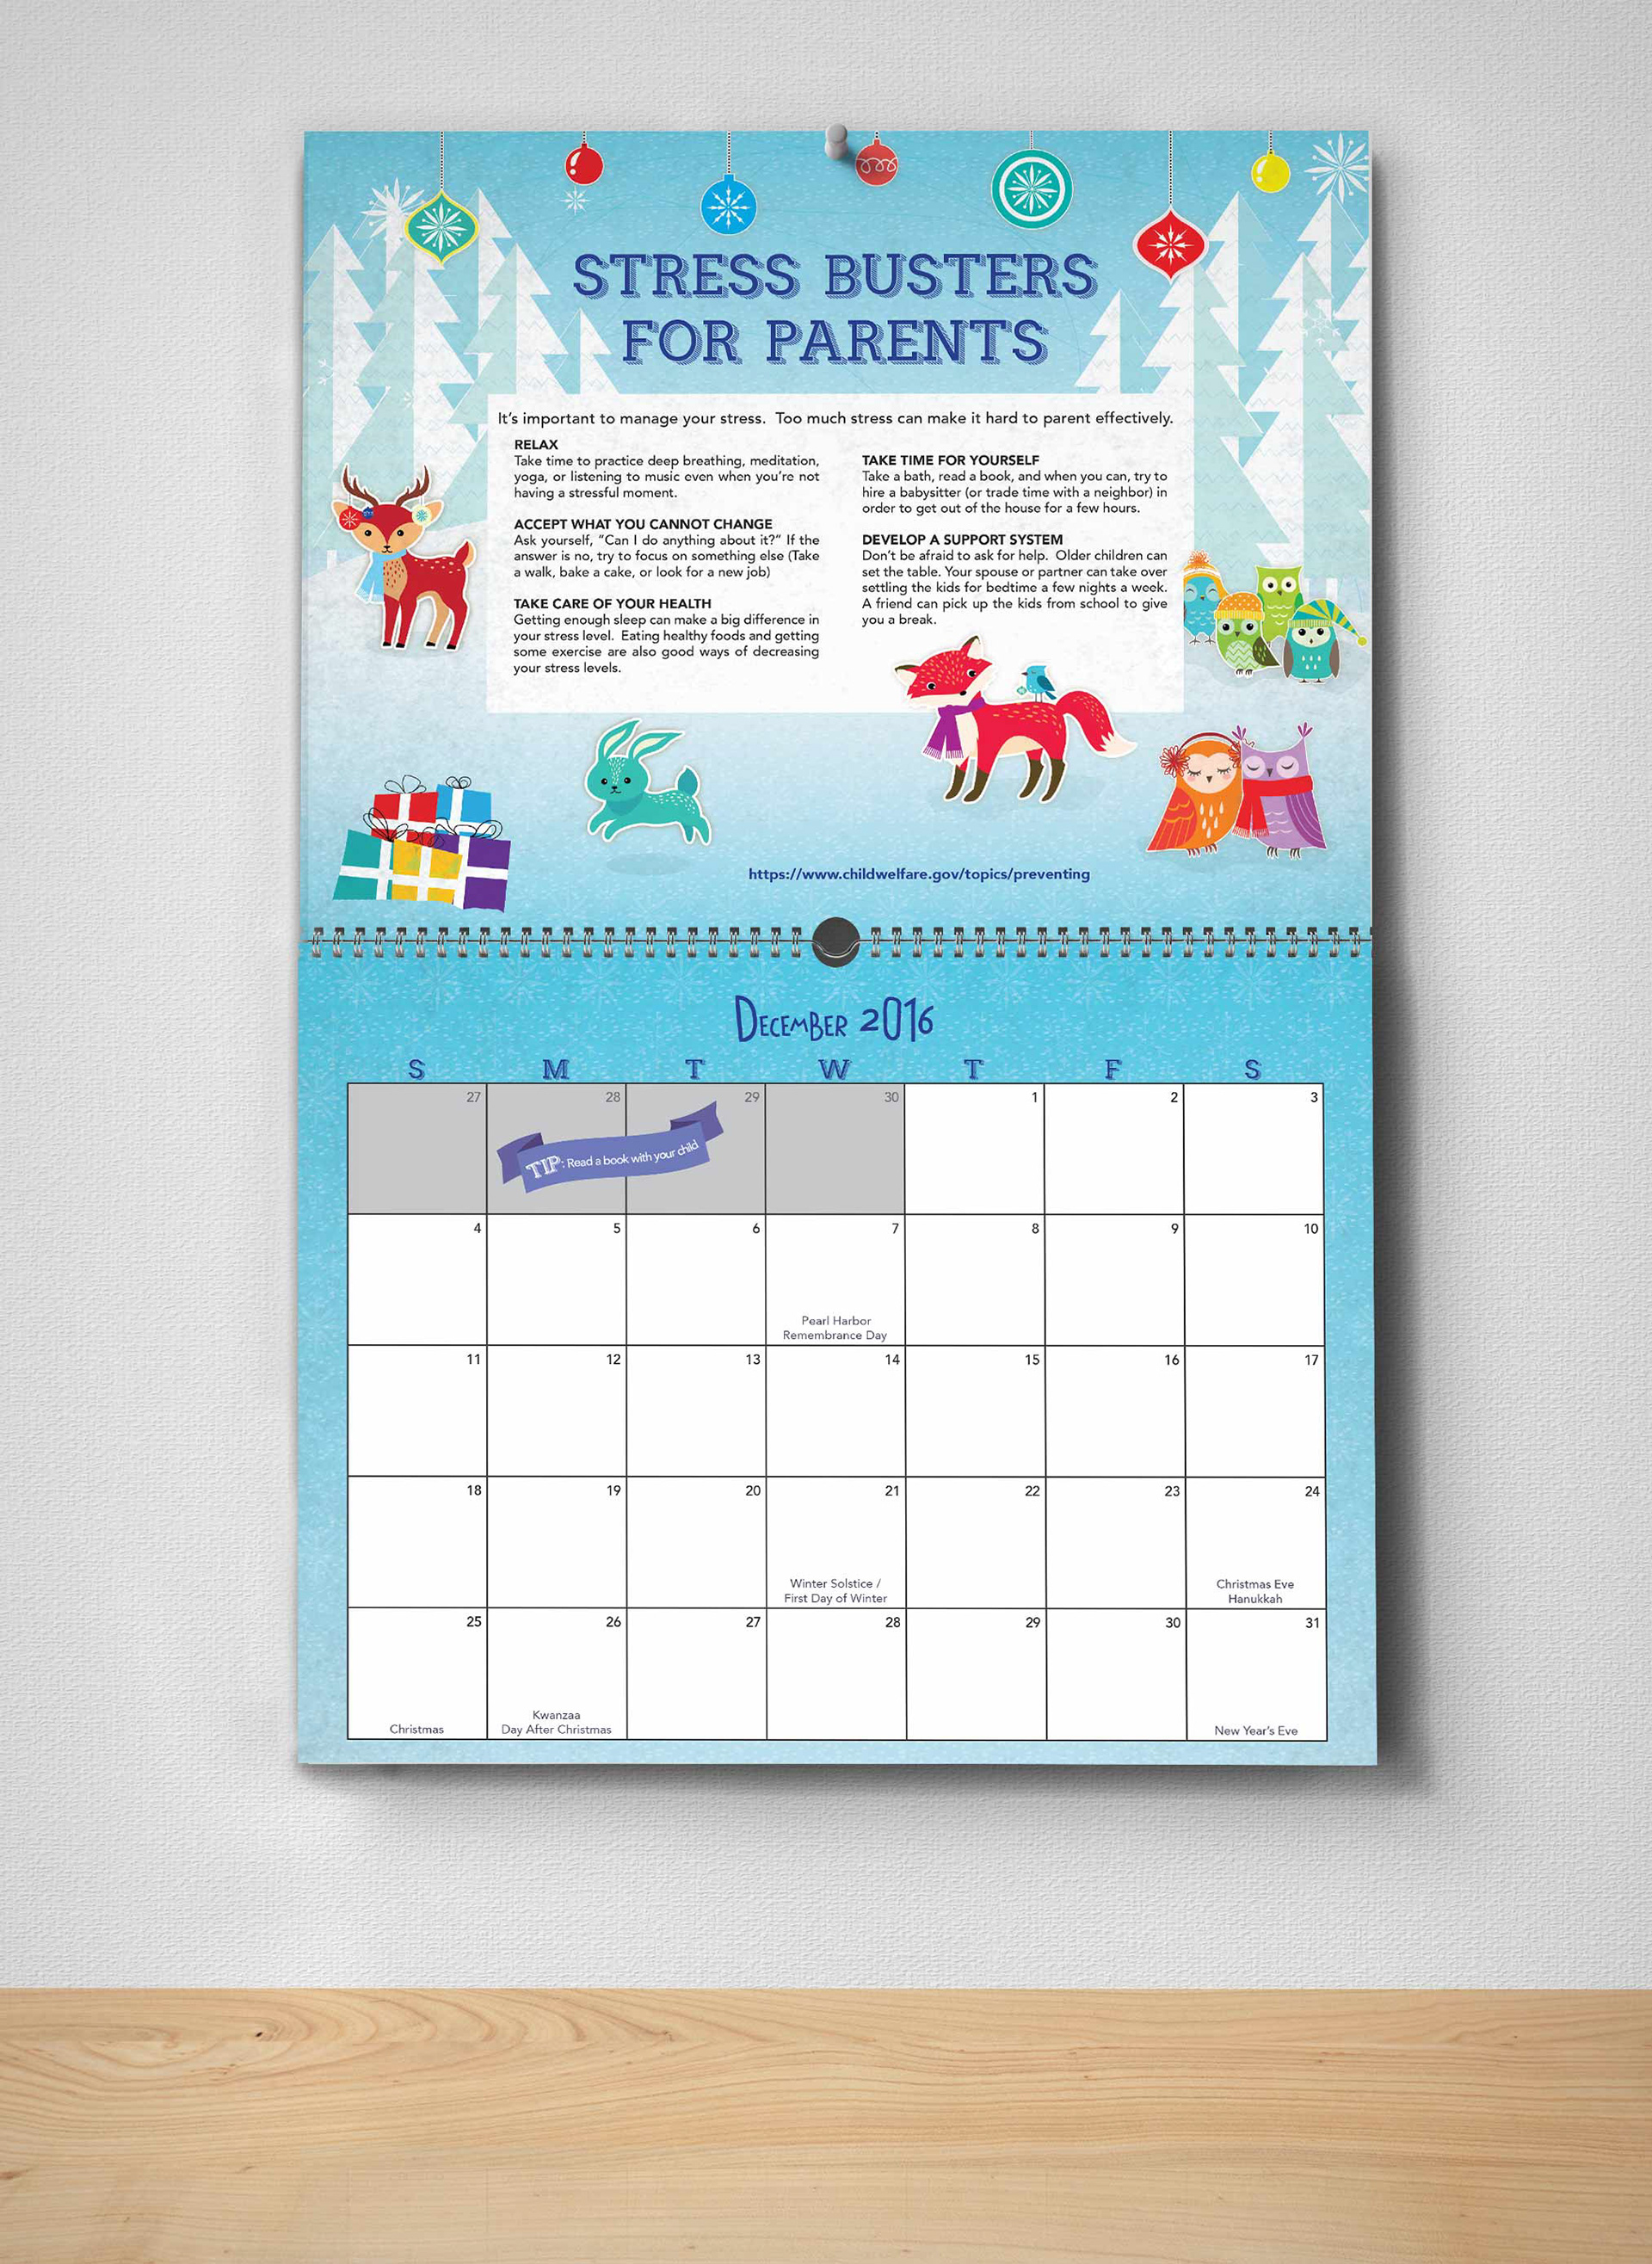 Audrey rainwater dfps 2016 parenting tips calendar calendar for 2016 the inicial animal images were bought from istock and then manipulated to go with the different scenes leaving the background and solutioingenieria Image collections